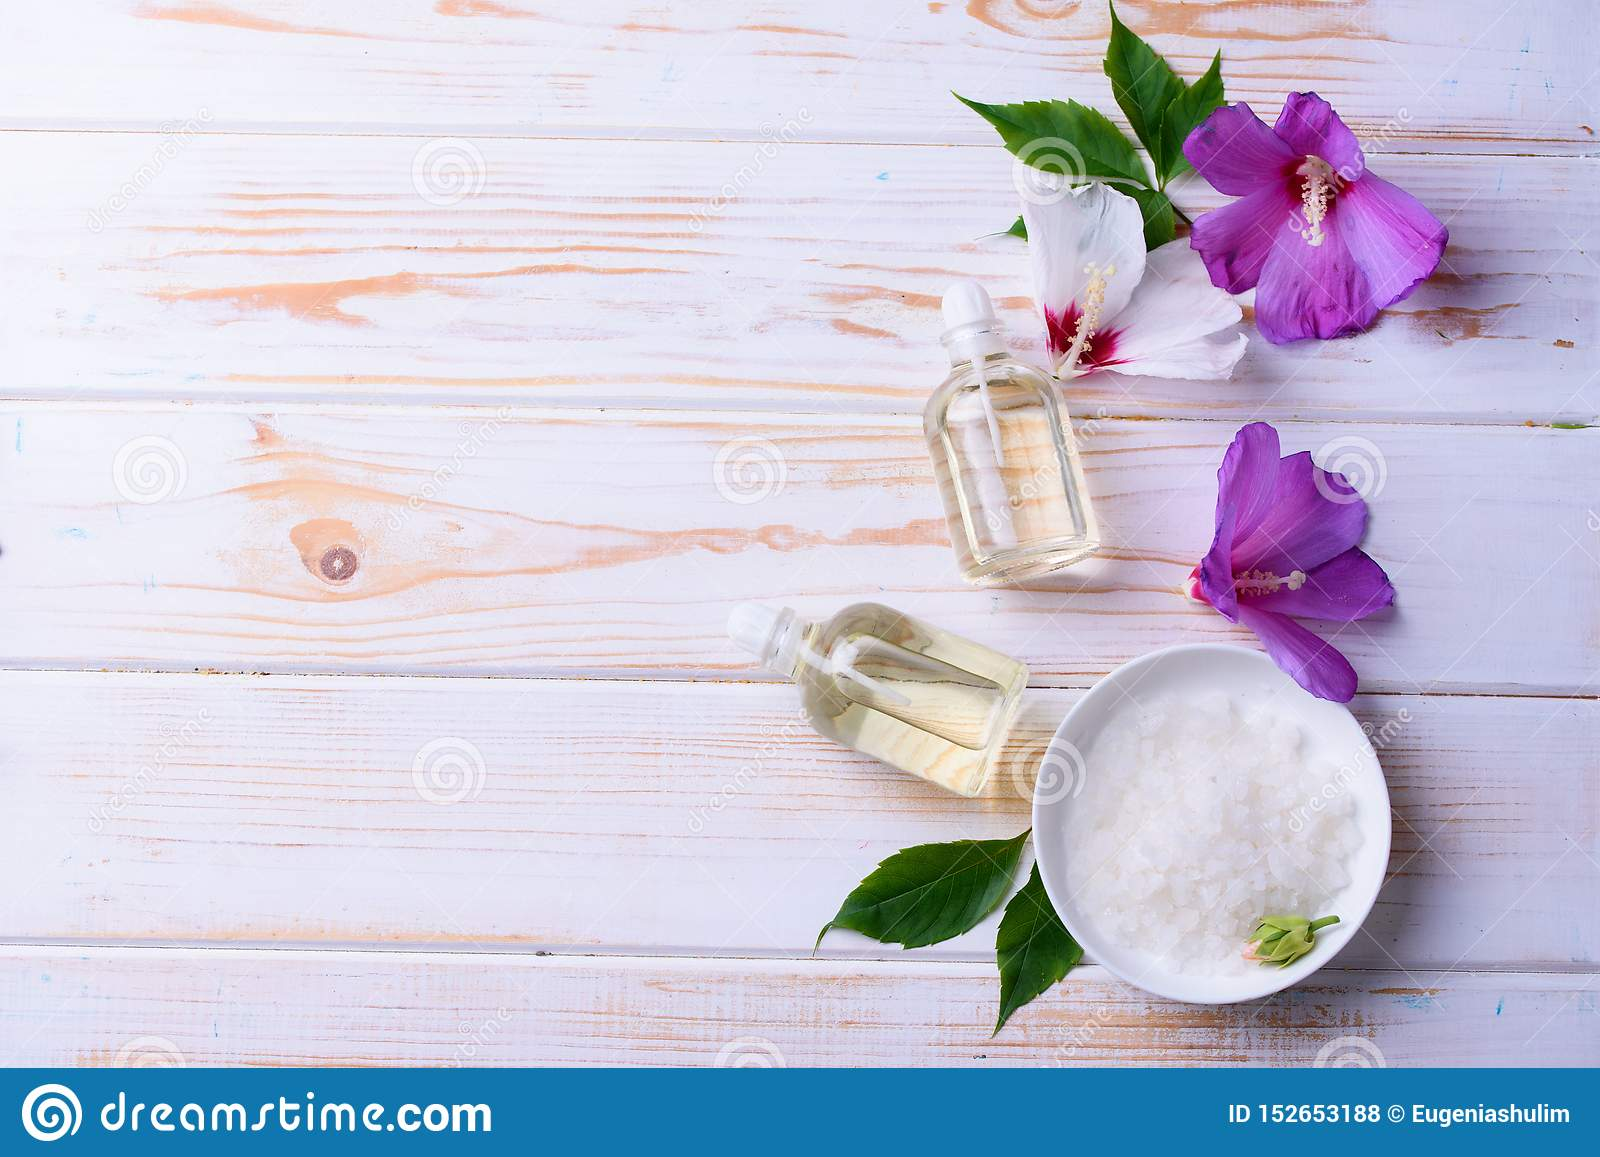 Beautiful layout of cosmetic oils on a wooden background. Natural cosmetics for face and body